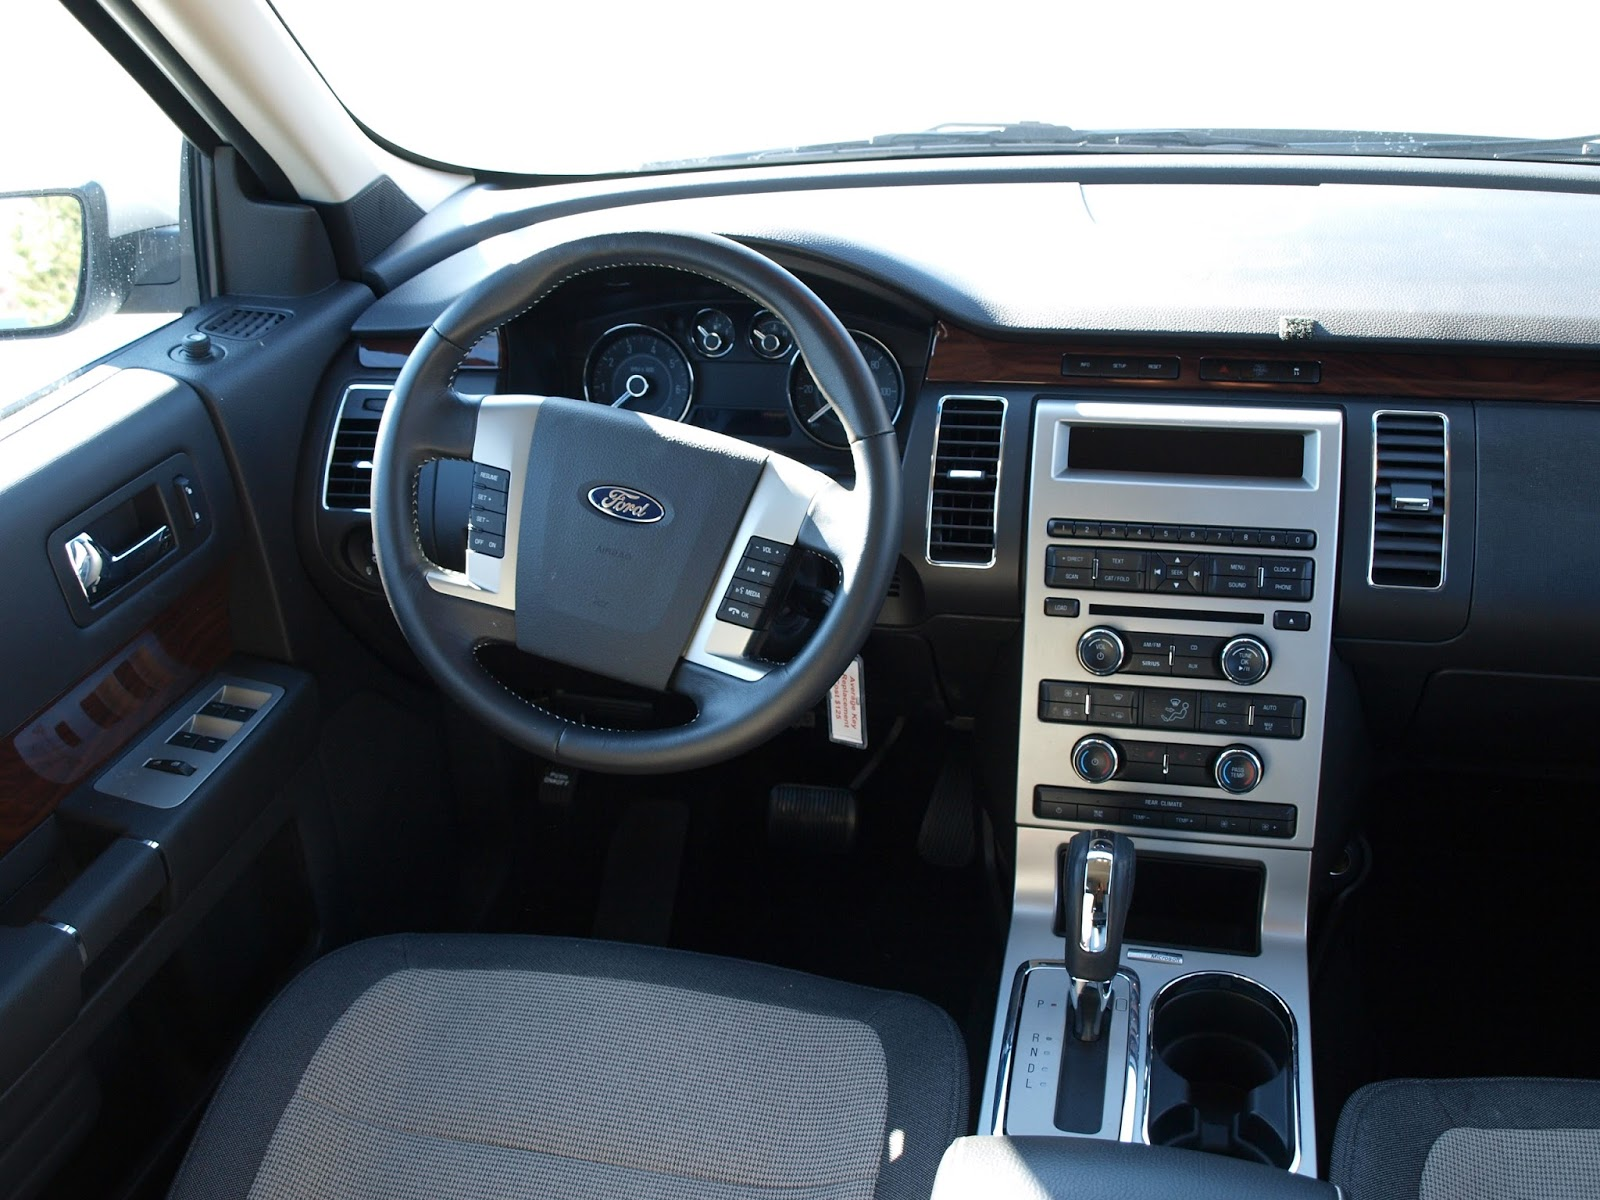 Ford Fusion 2016 Interior-Best Selling Cars